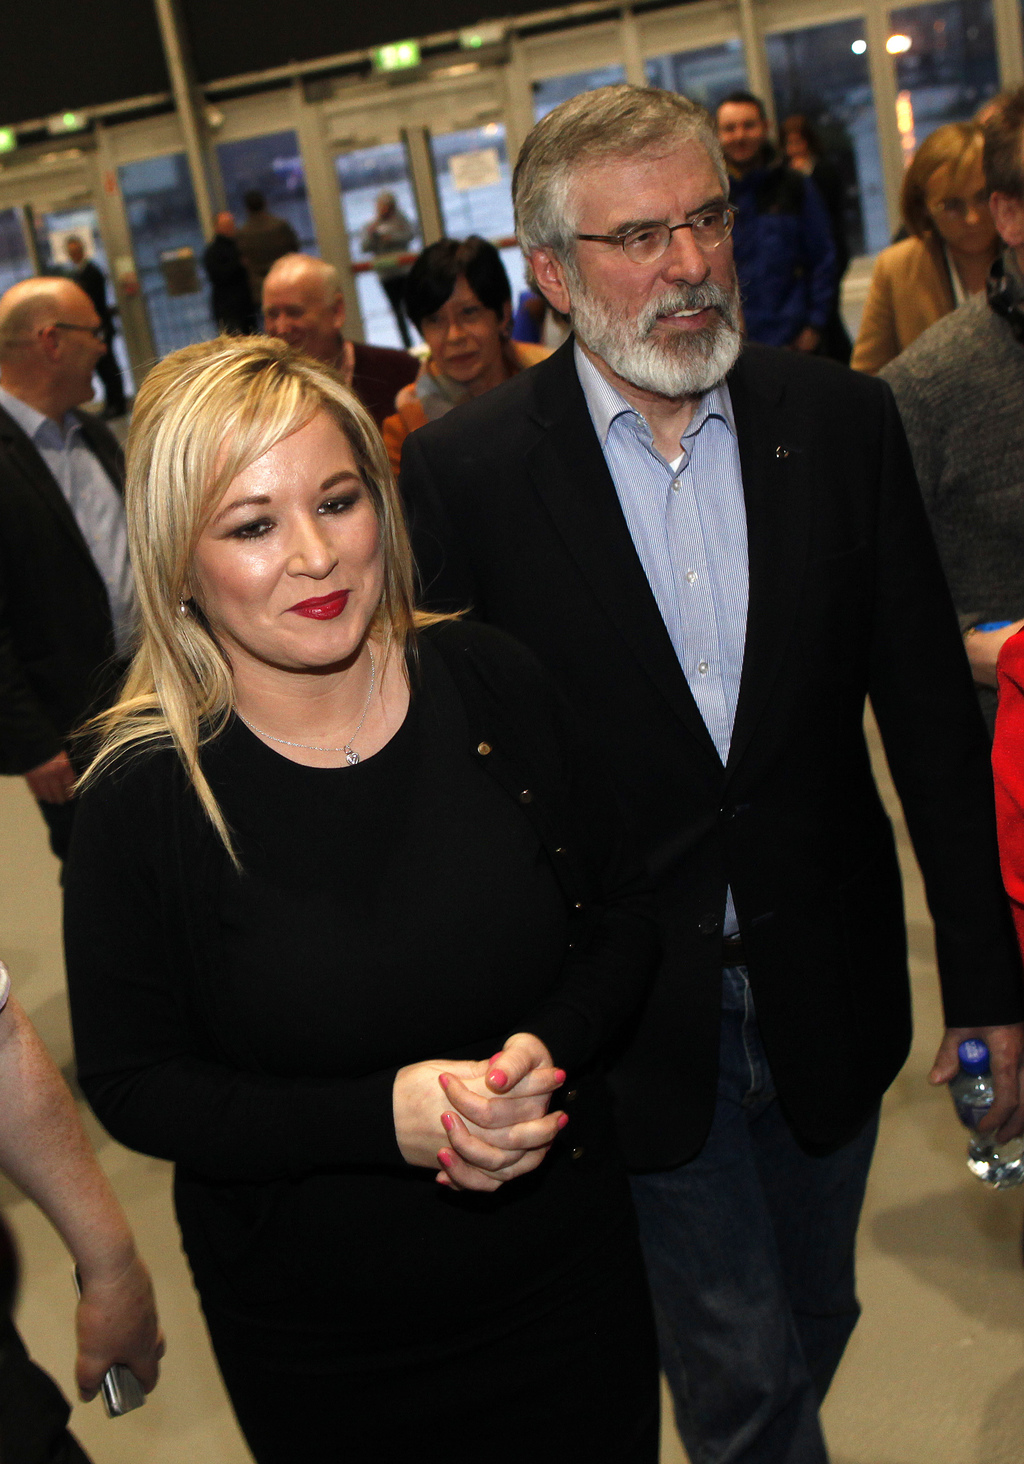 Sinn Fein's Michelle O'Neill and party leader Gerry Adams arrive at the count centre in Belfast, Northern Ireland, Friday, March 3, 201...